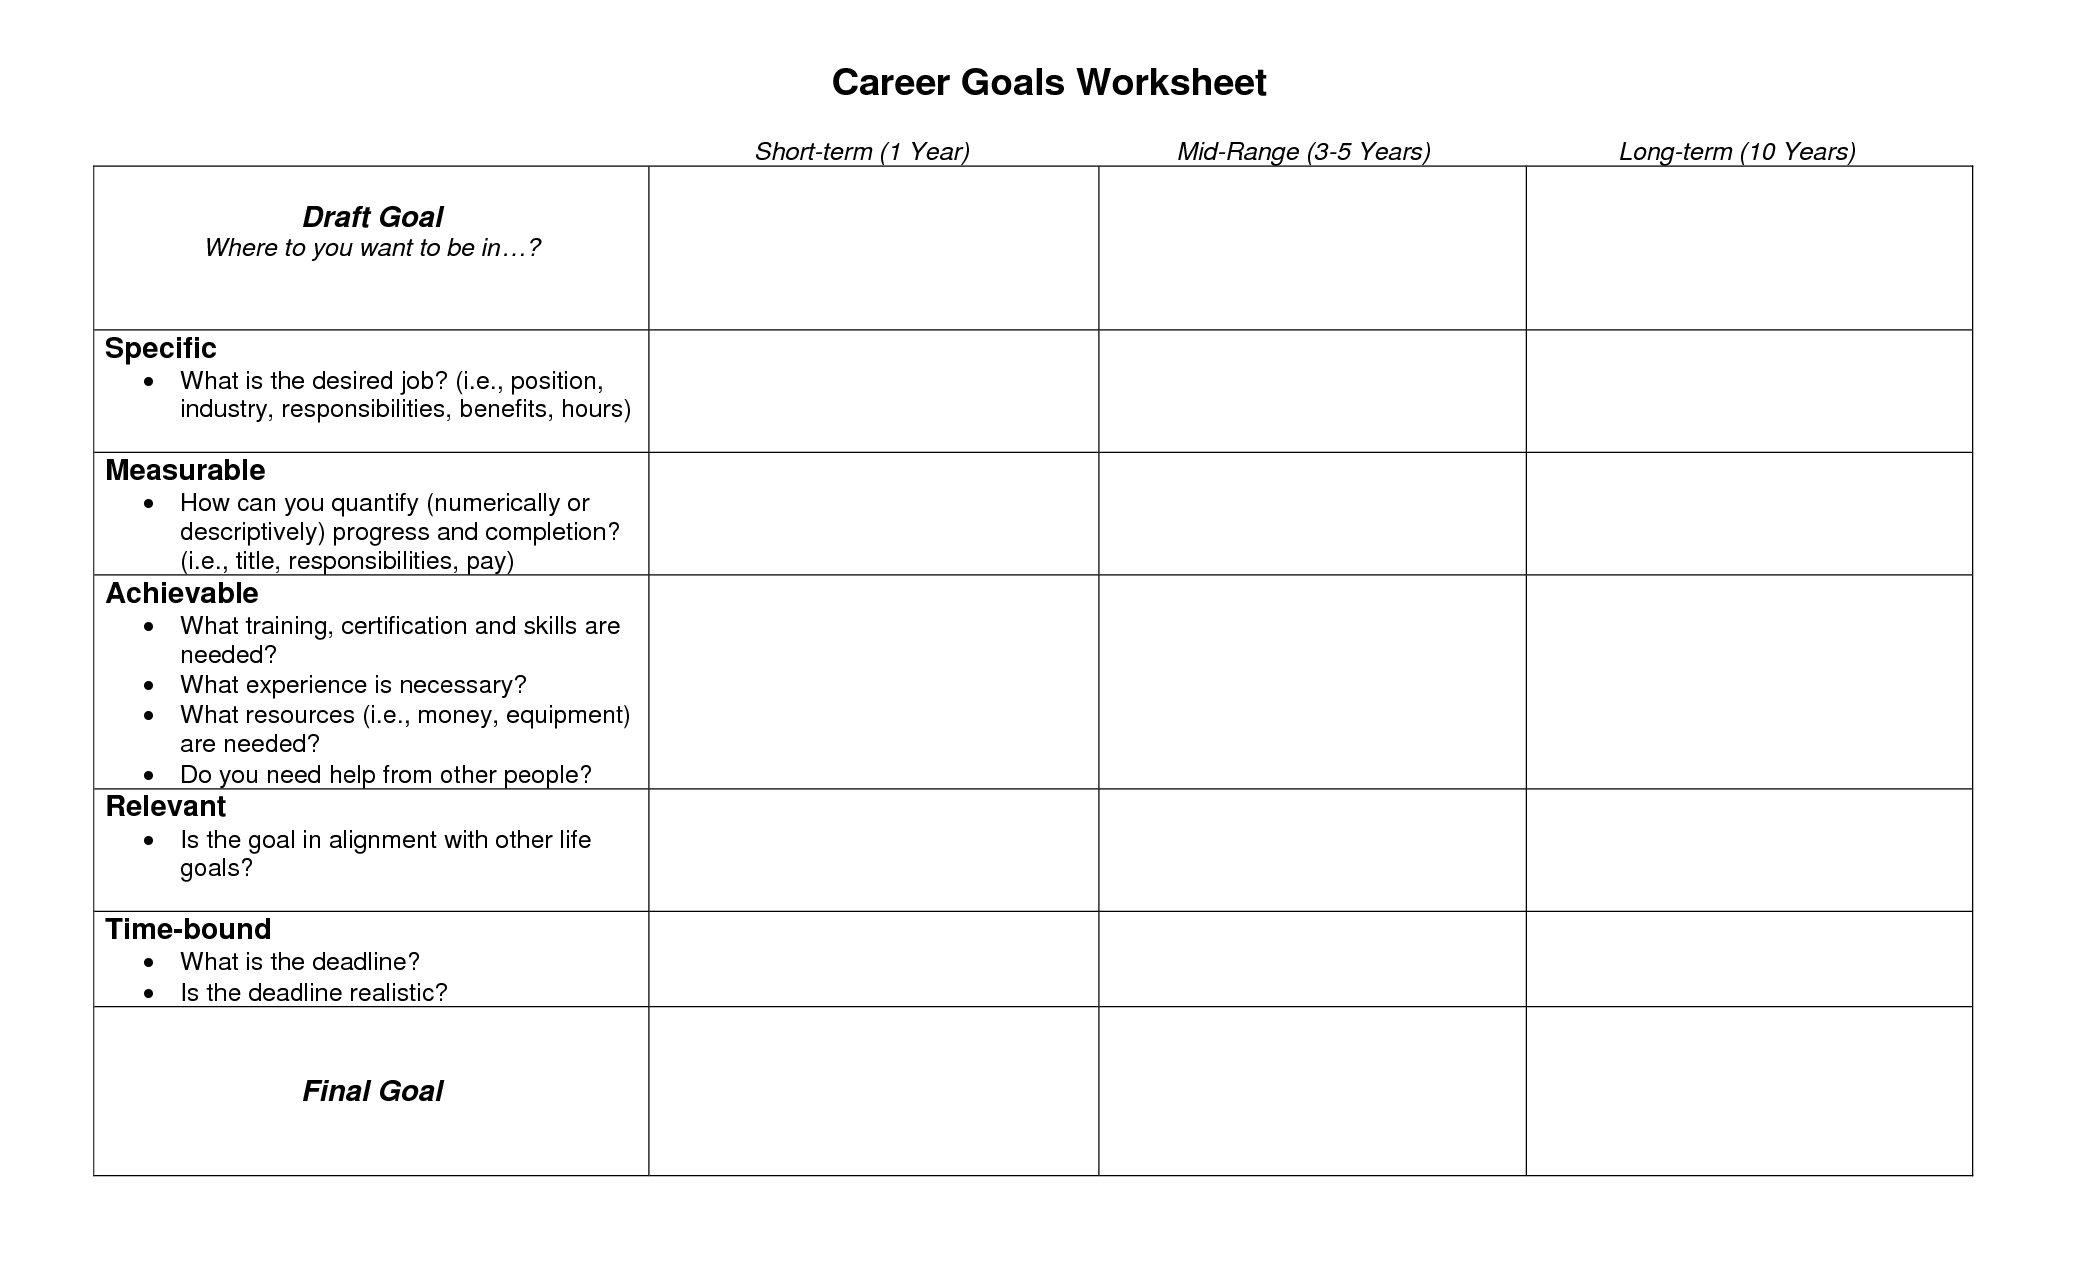 worksheet Smart Goals Worksheet For Students smart goals template worksheet for career google search career